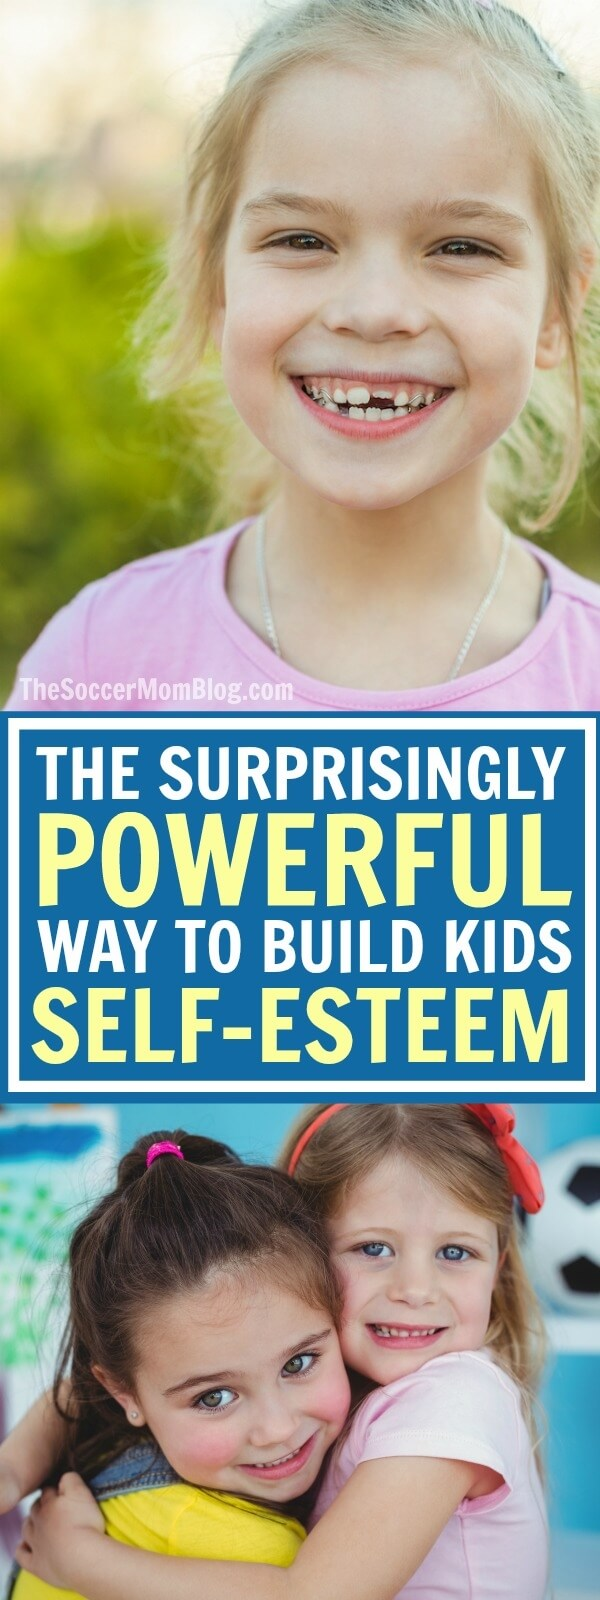 The surprisingly powerful way to boost kids self-esteem, demonstrate their abilities & feel like a valuable part of their community.